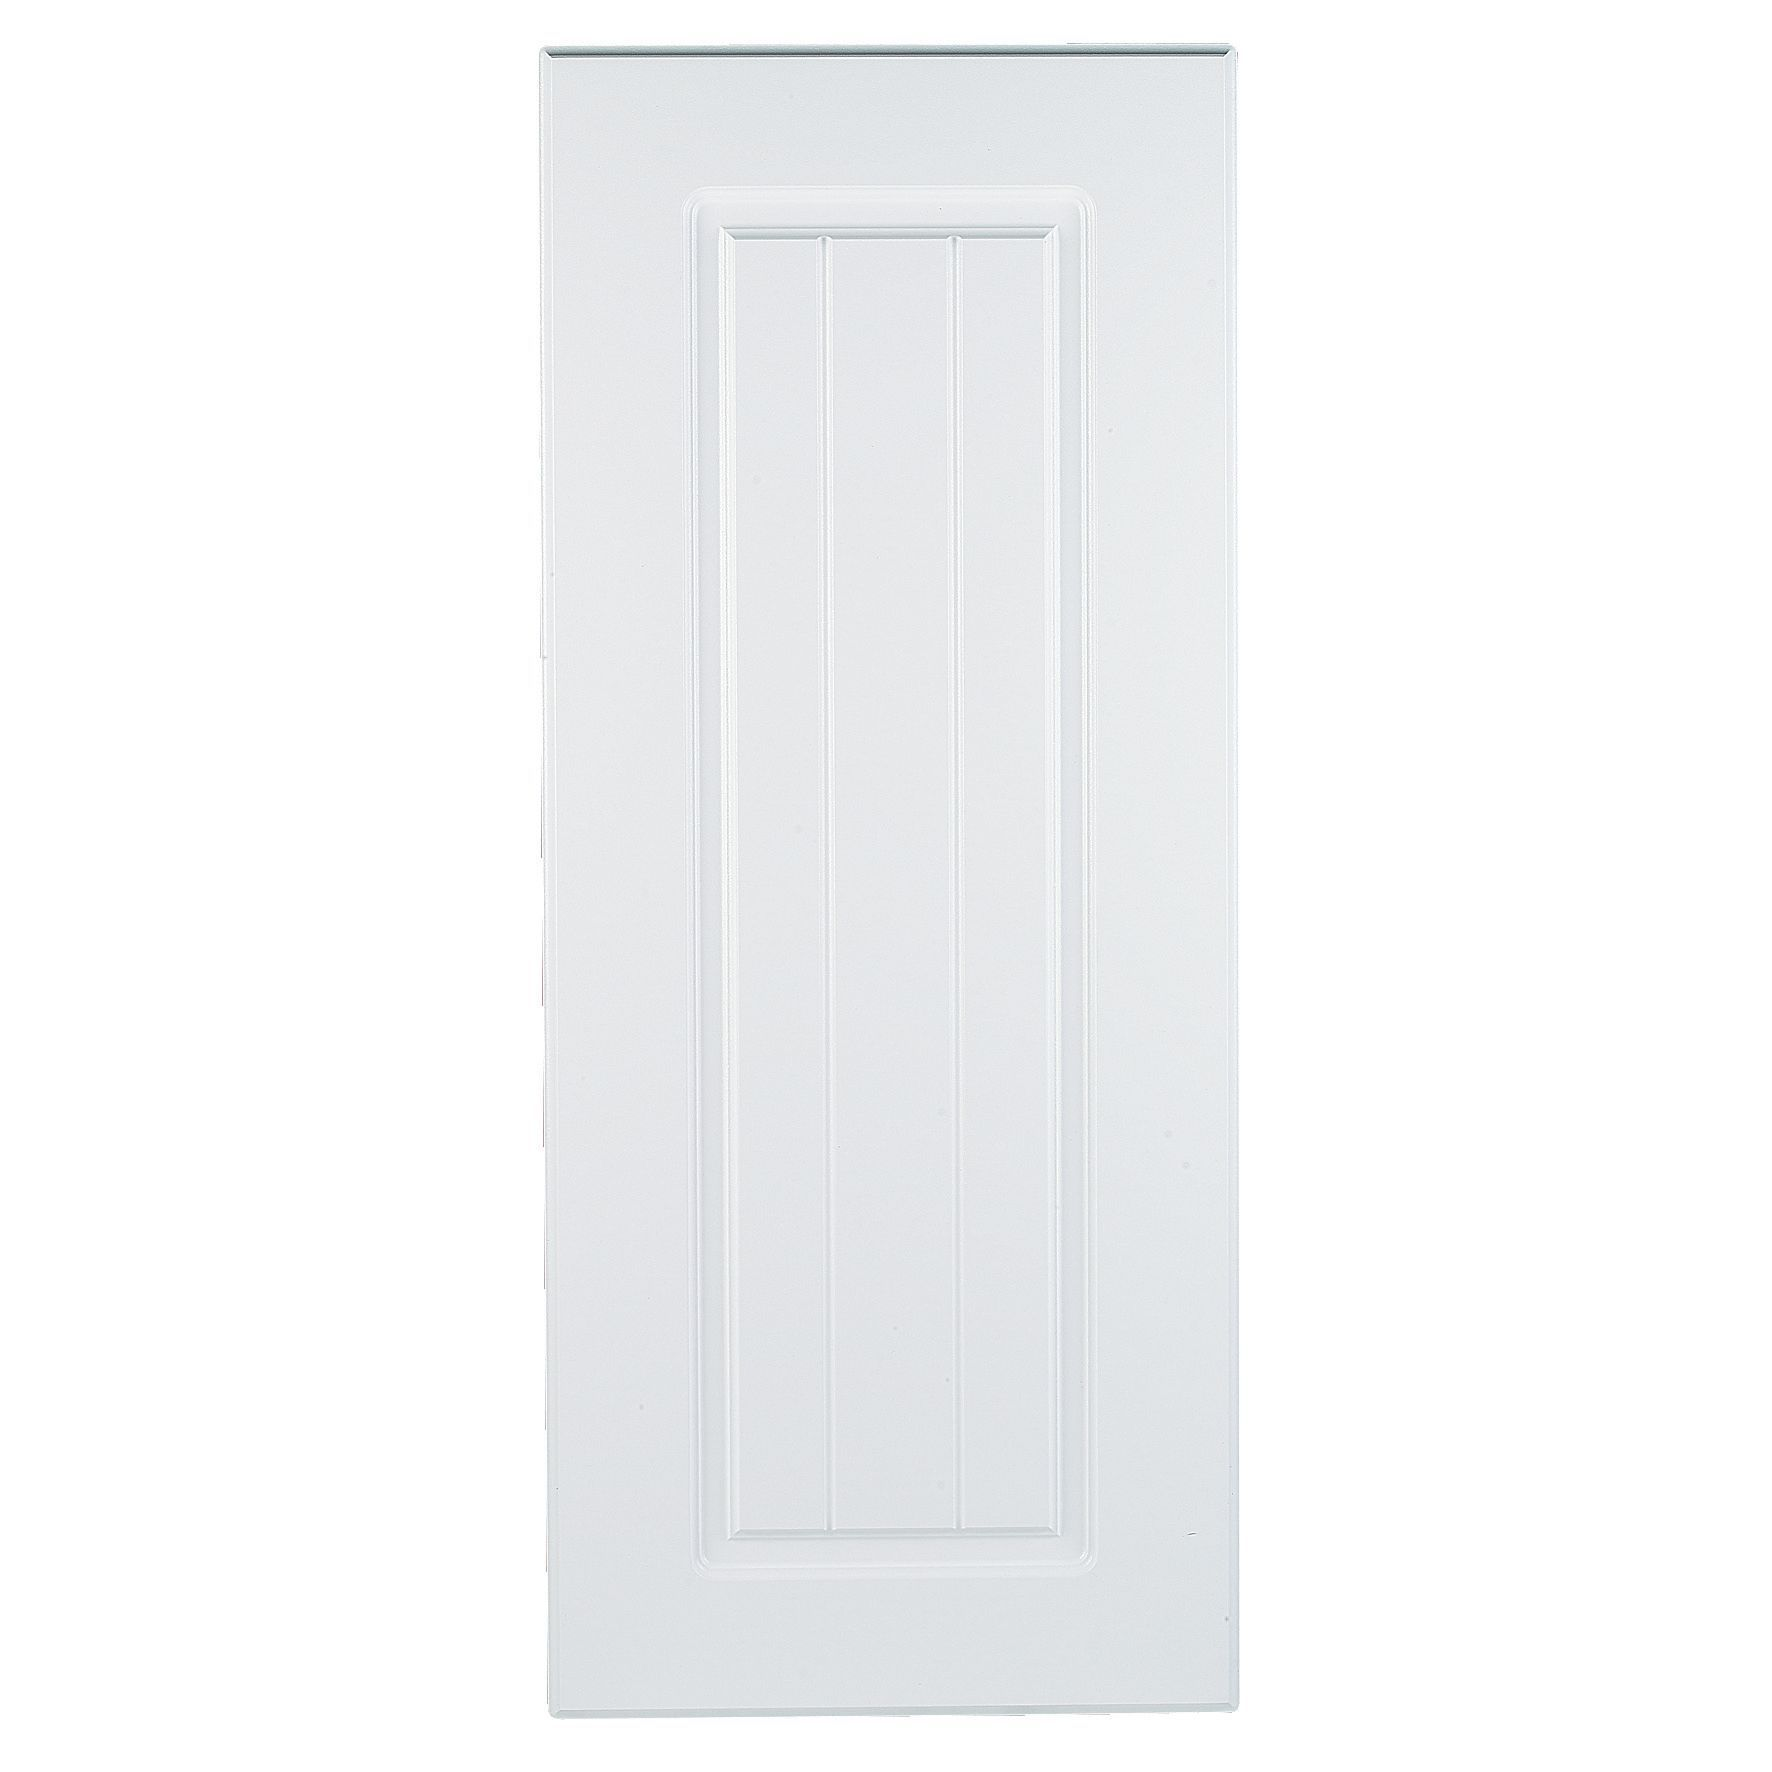 It Kitchens Chilton White Country Style Standard Door W